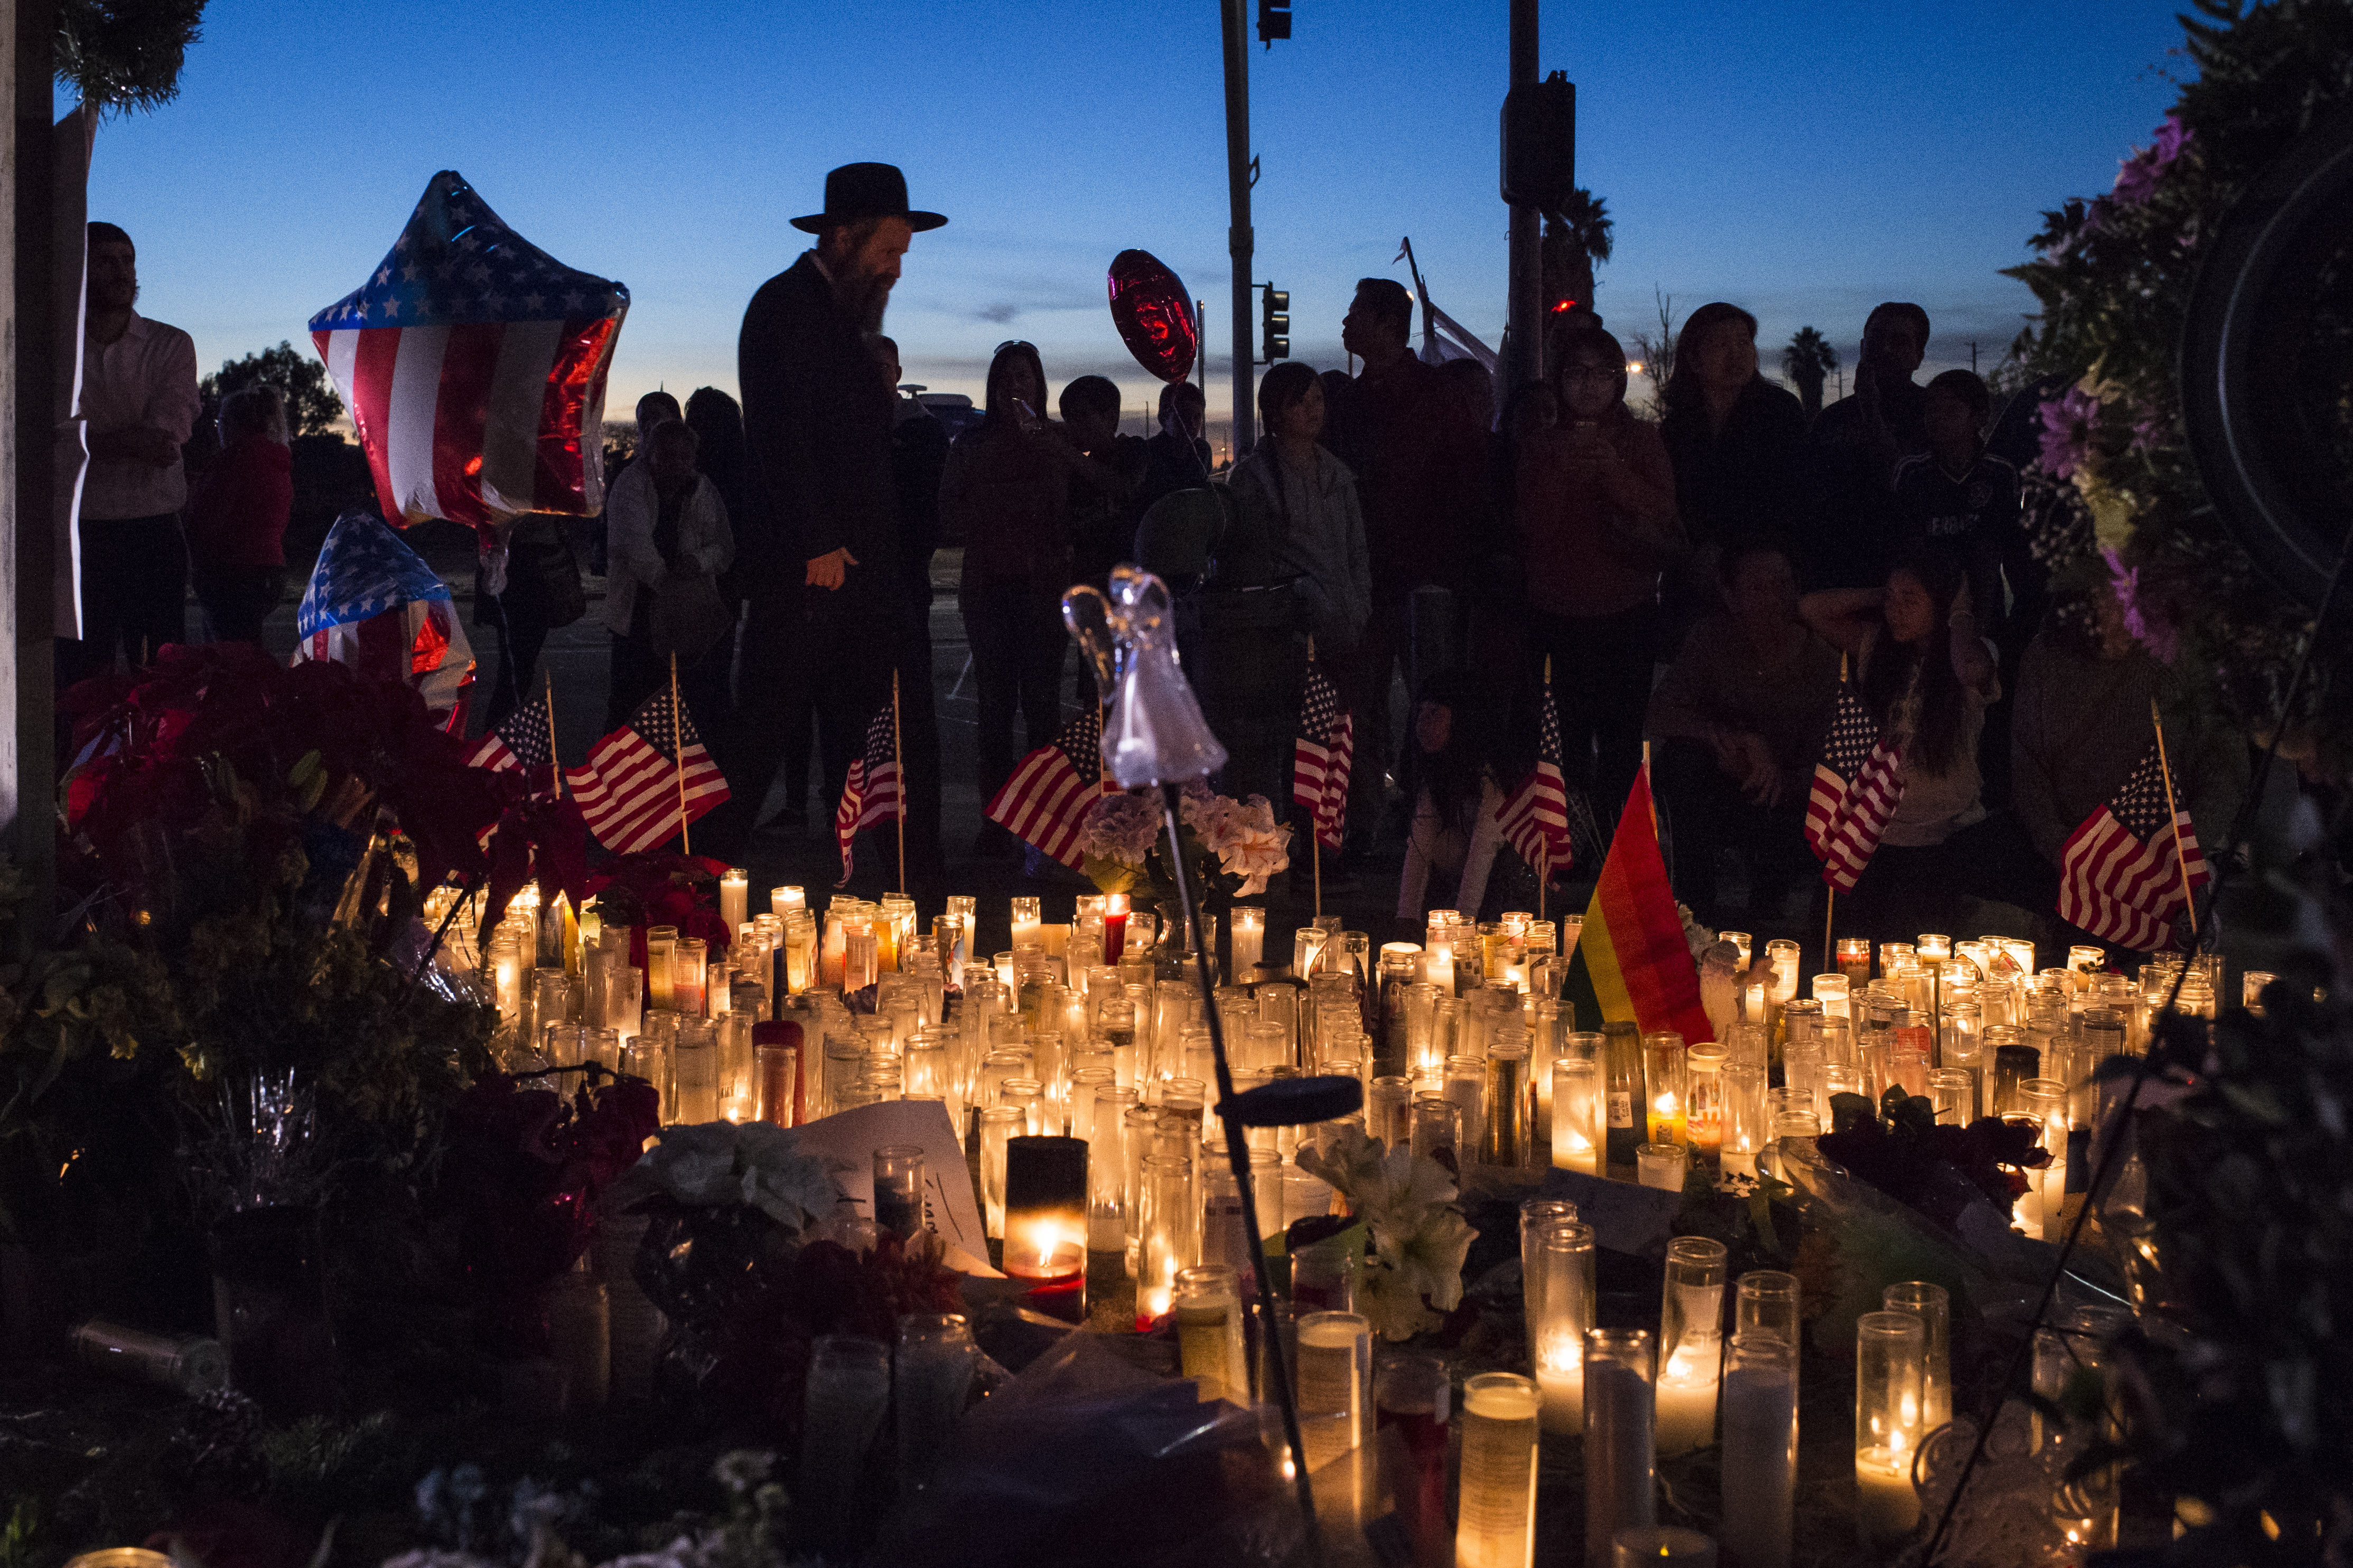 People pay their respects near the location of the mass shooting in San Bernardino, CA, on Dec. 6, 2015.